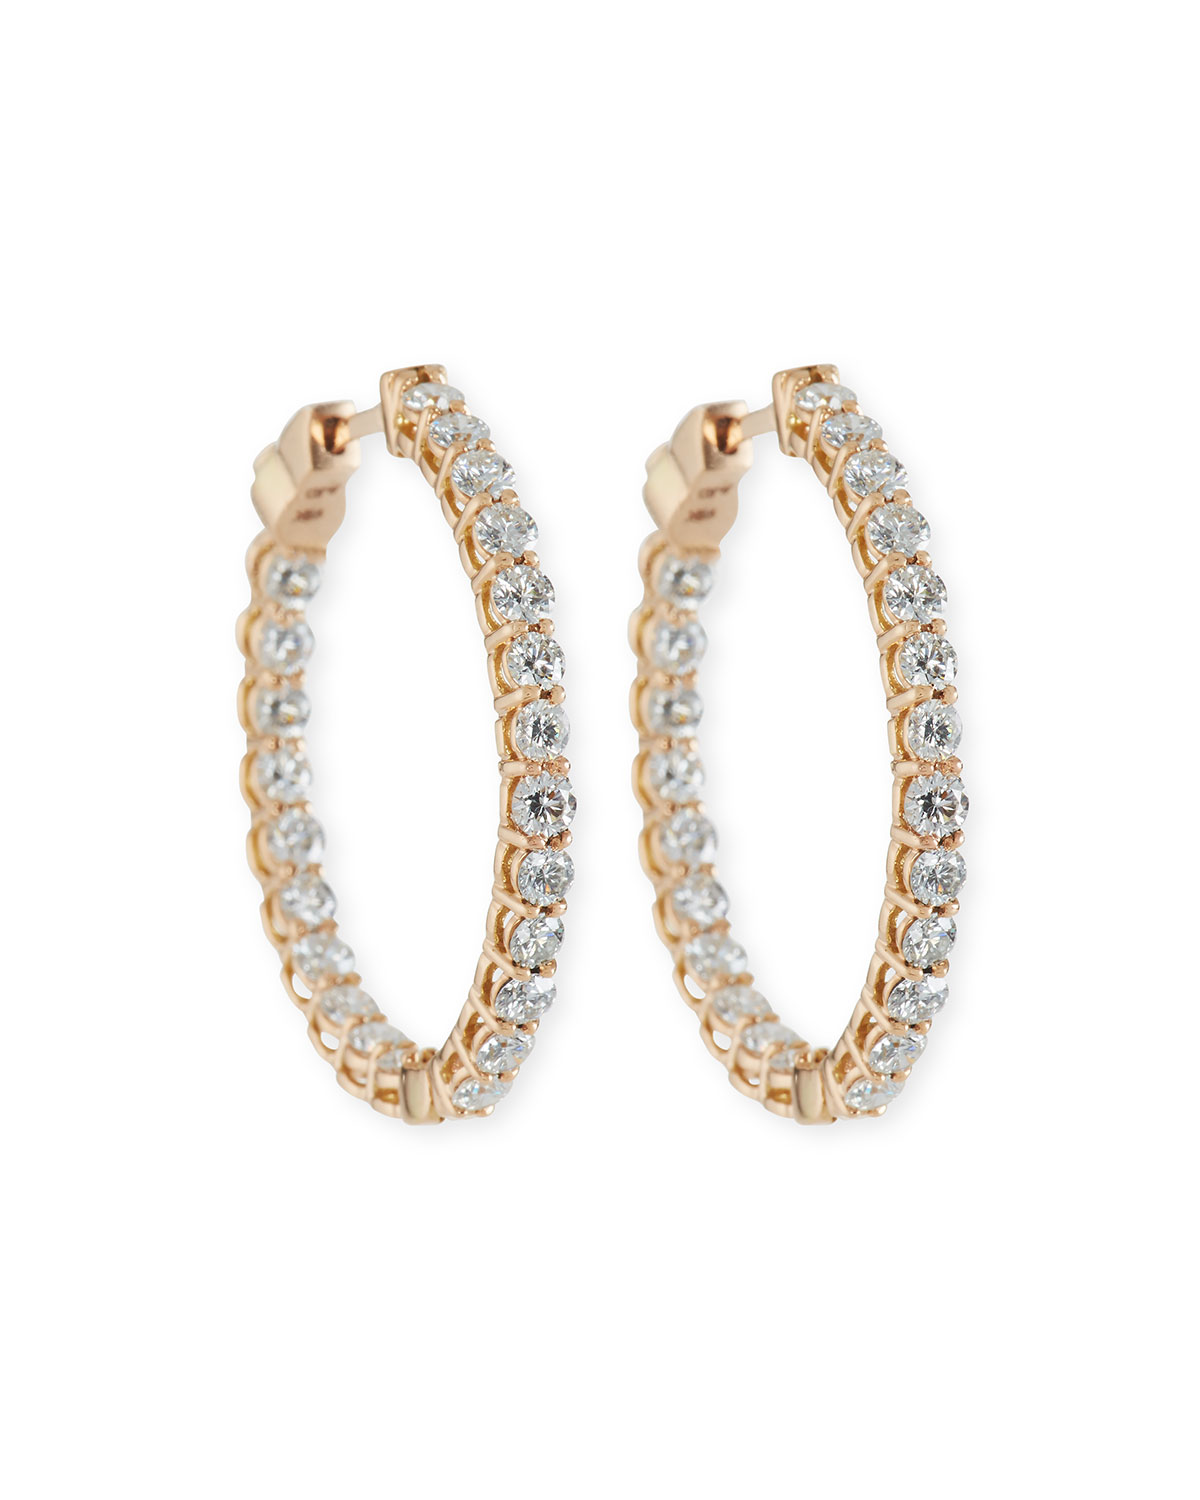 Small Diamond Hoop Earrings In 18k Rose Gold